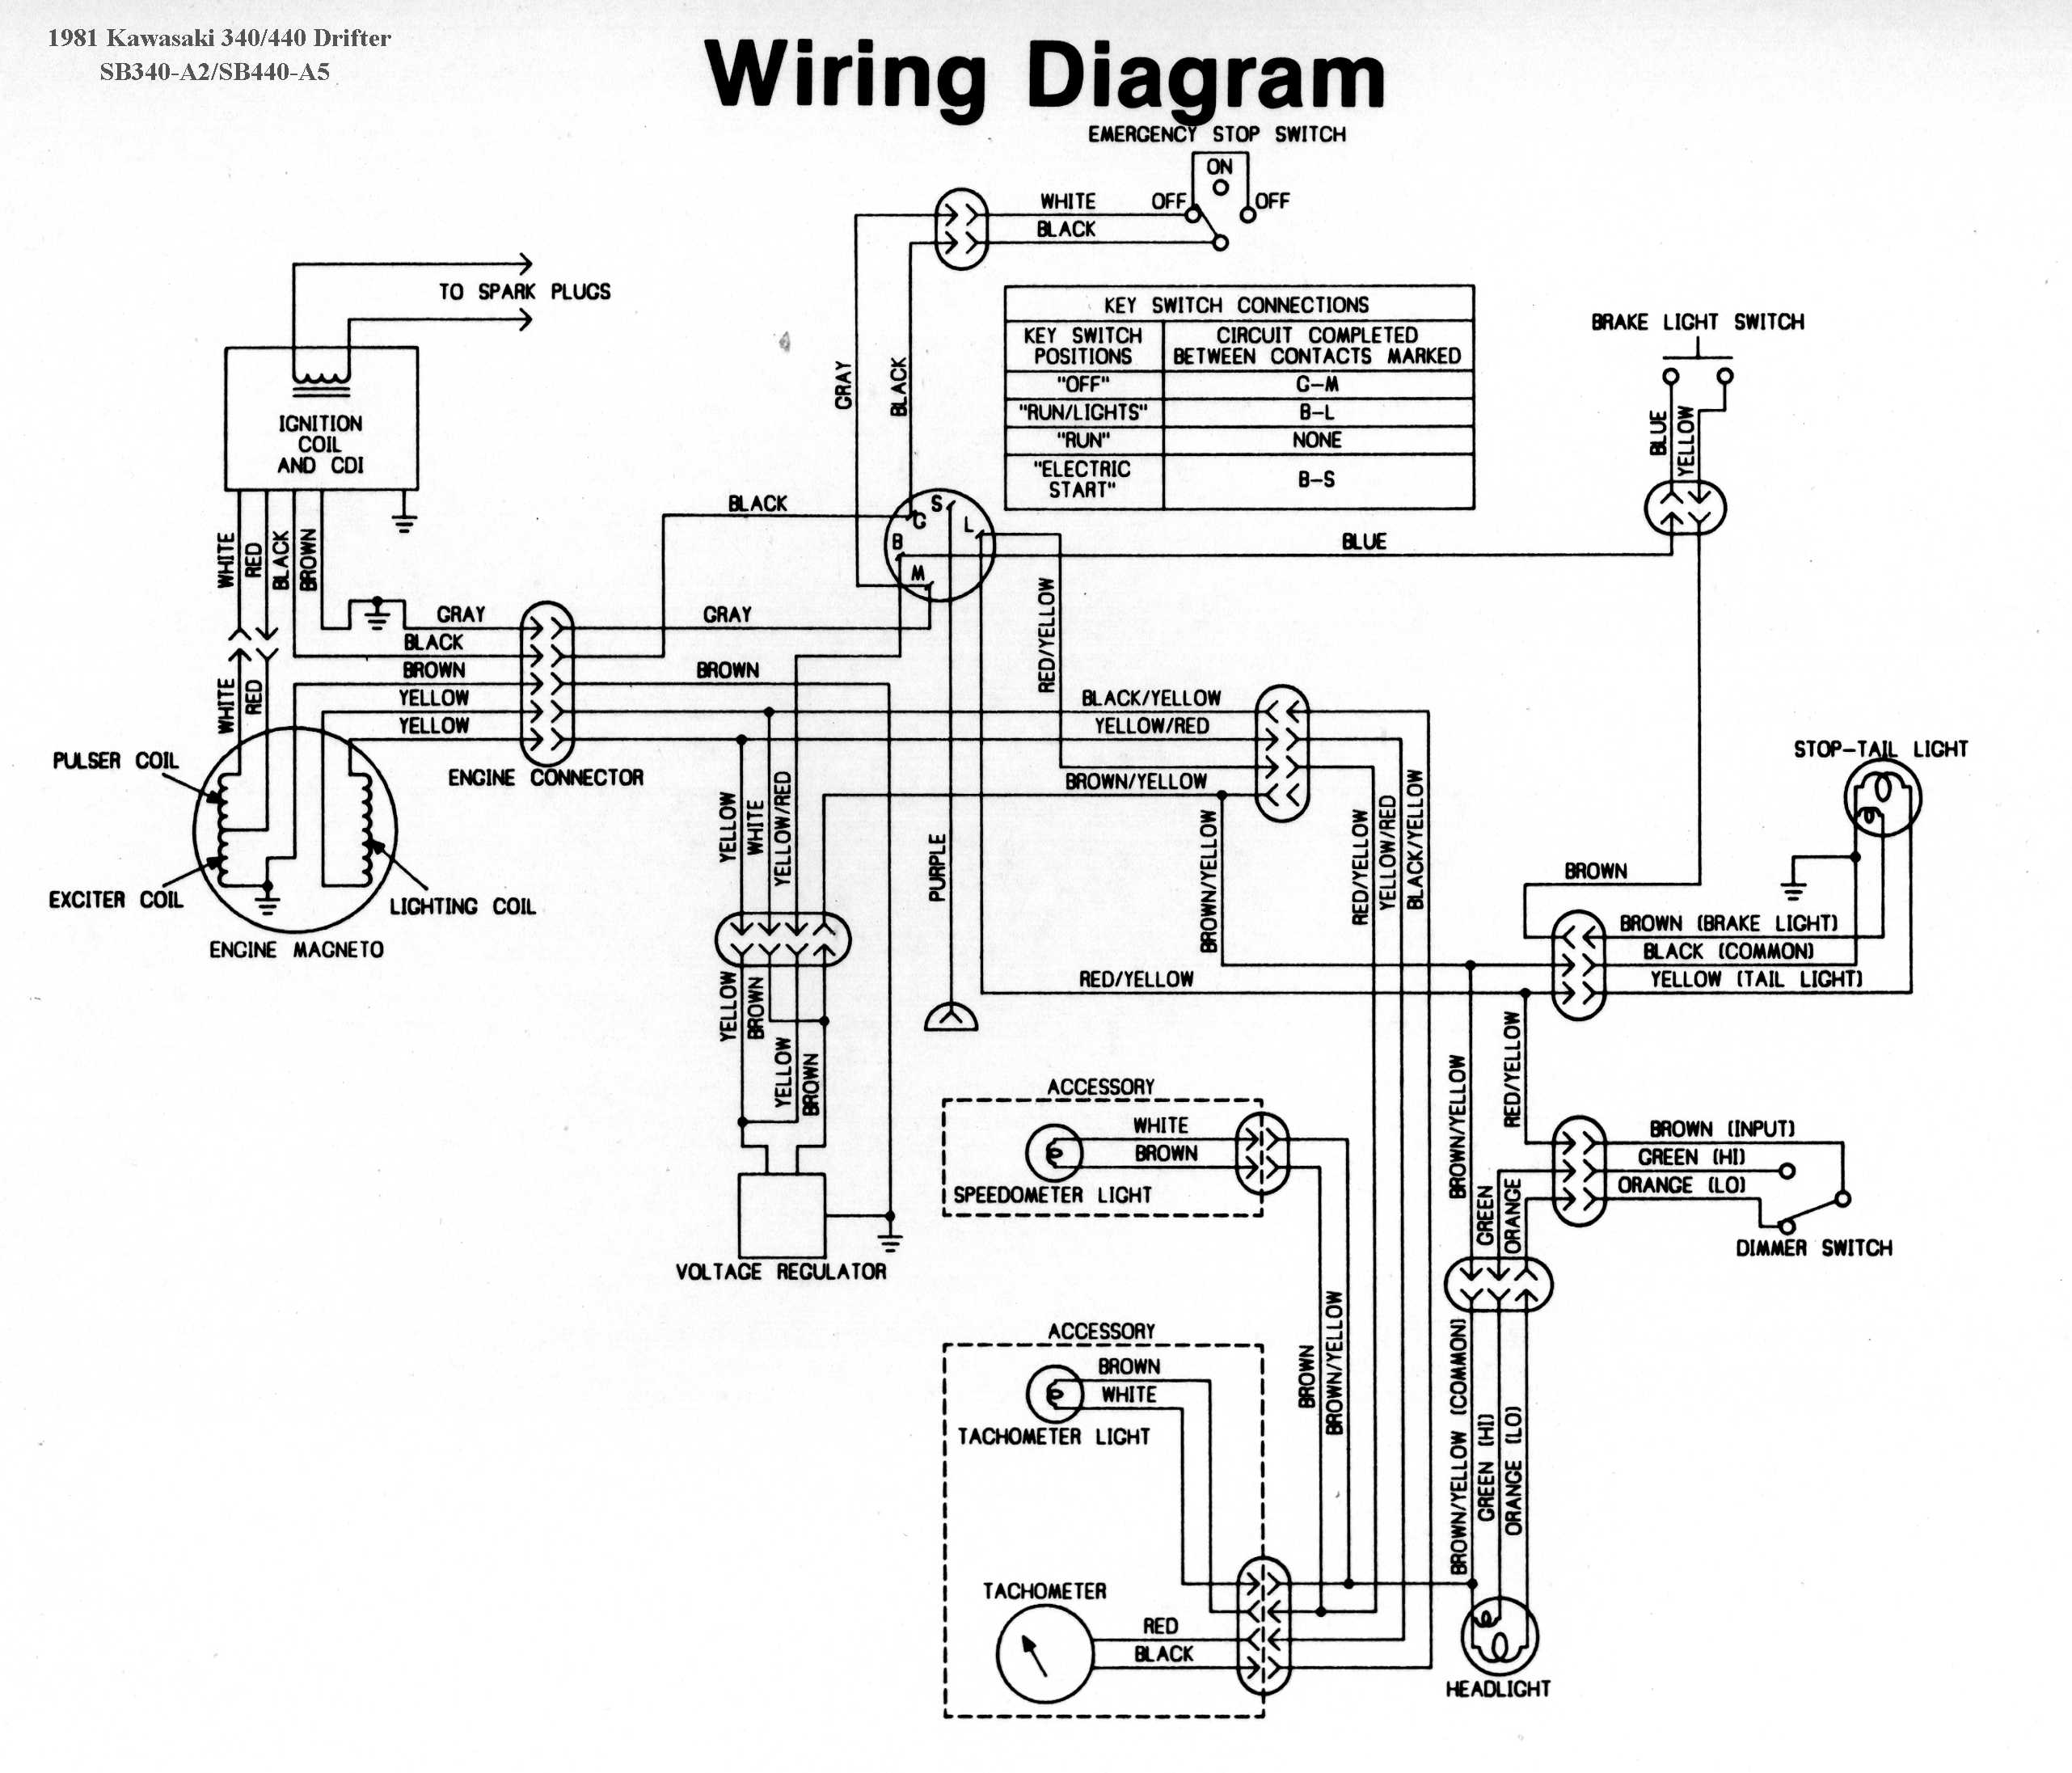 sb340a2 kawasaki 1980 kawasaki 440 ltd wiring diagram at bayanpartner.co